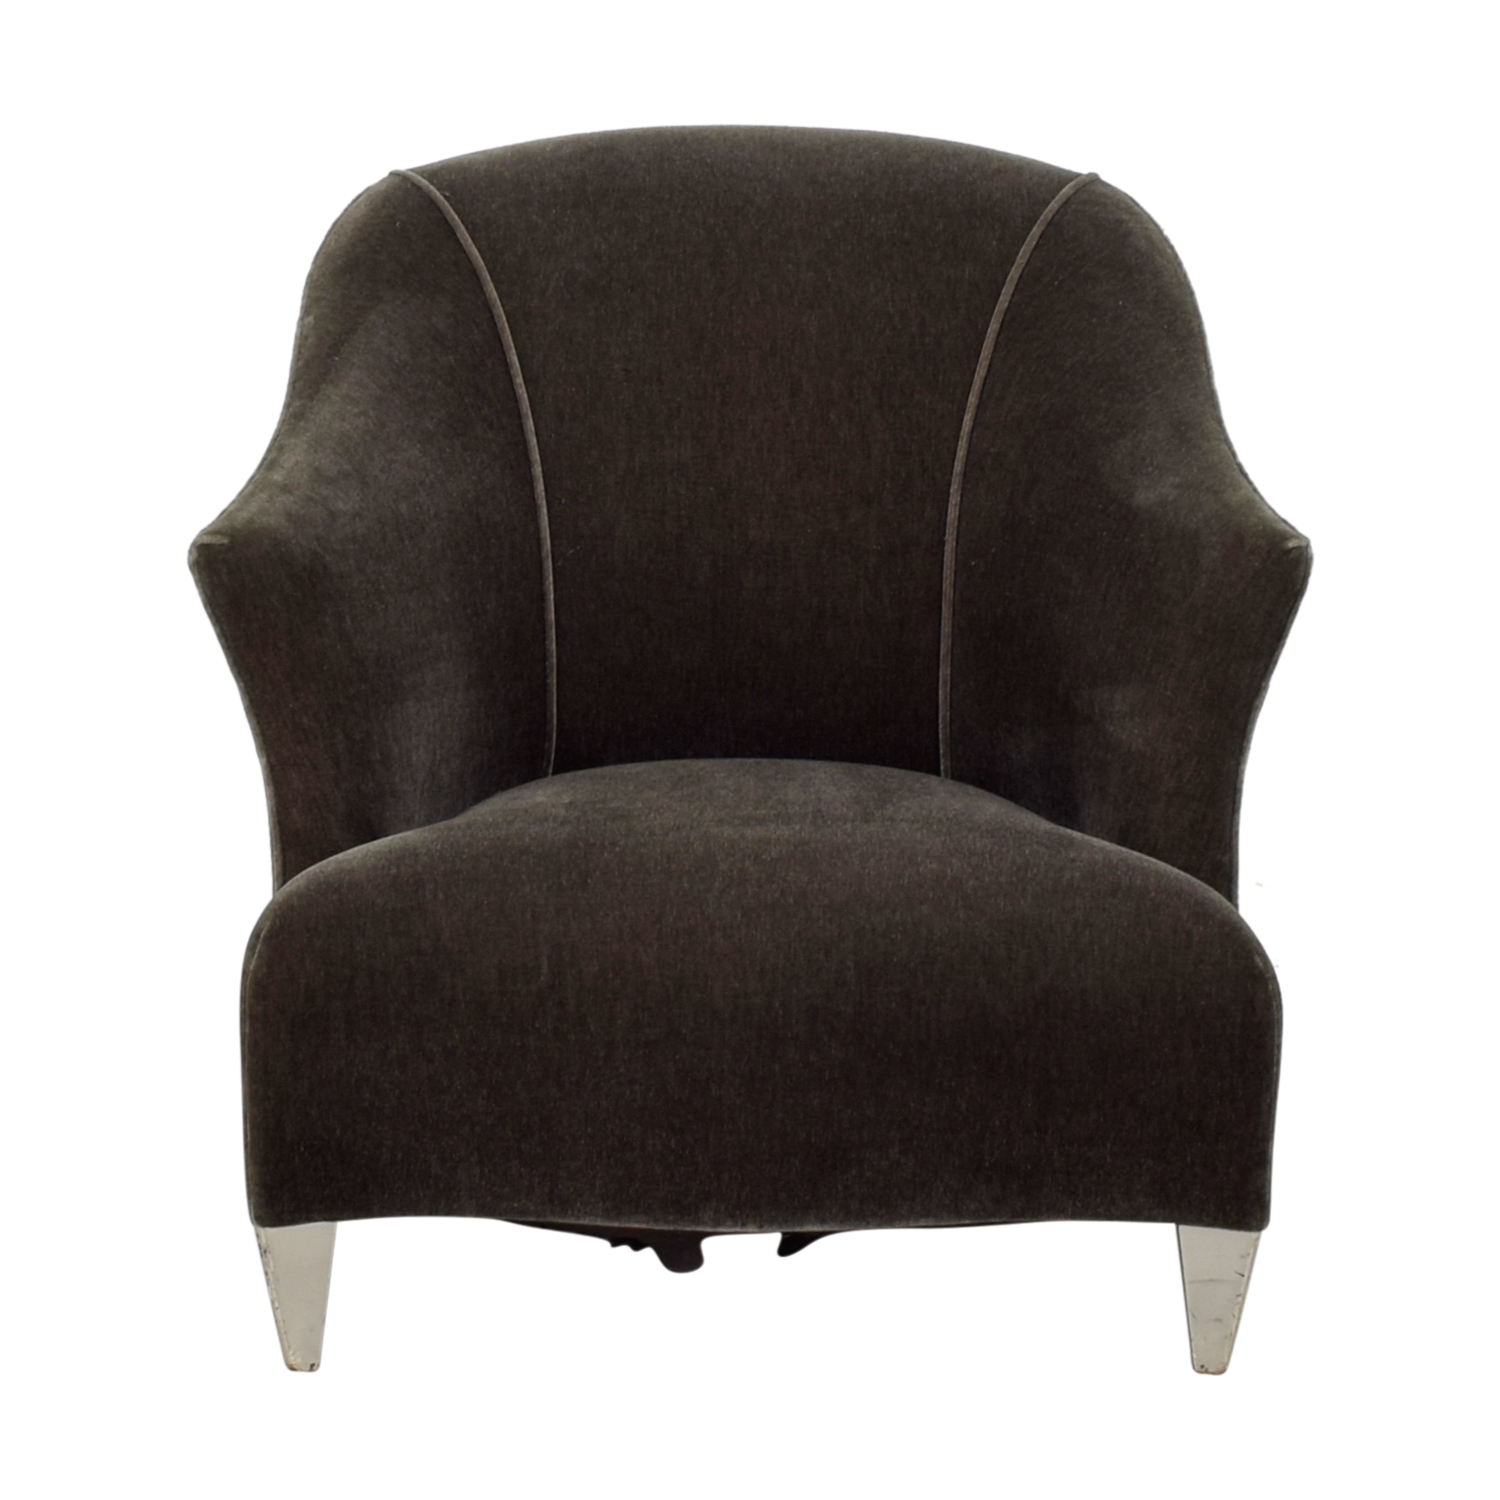 Alfred Donghia Alfred Donghia Shell Charcoal Velour Accent Chair coupon